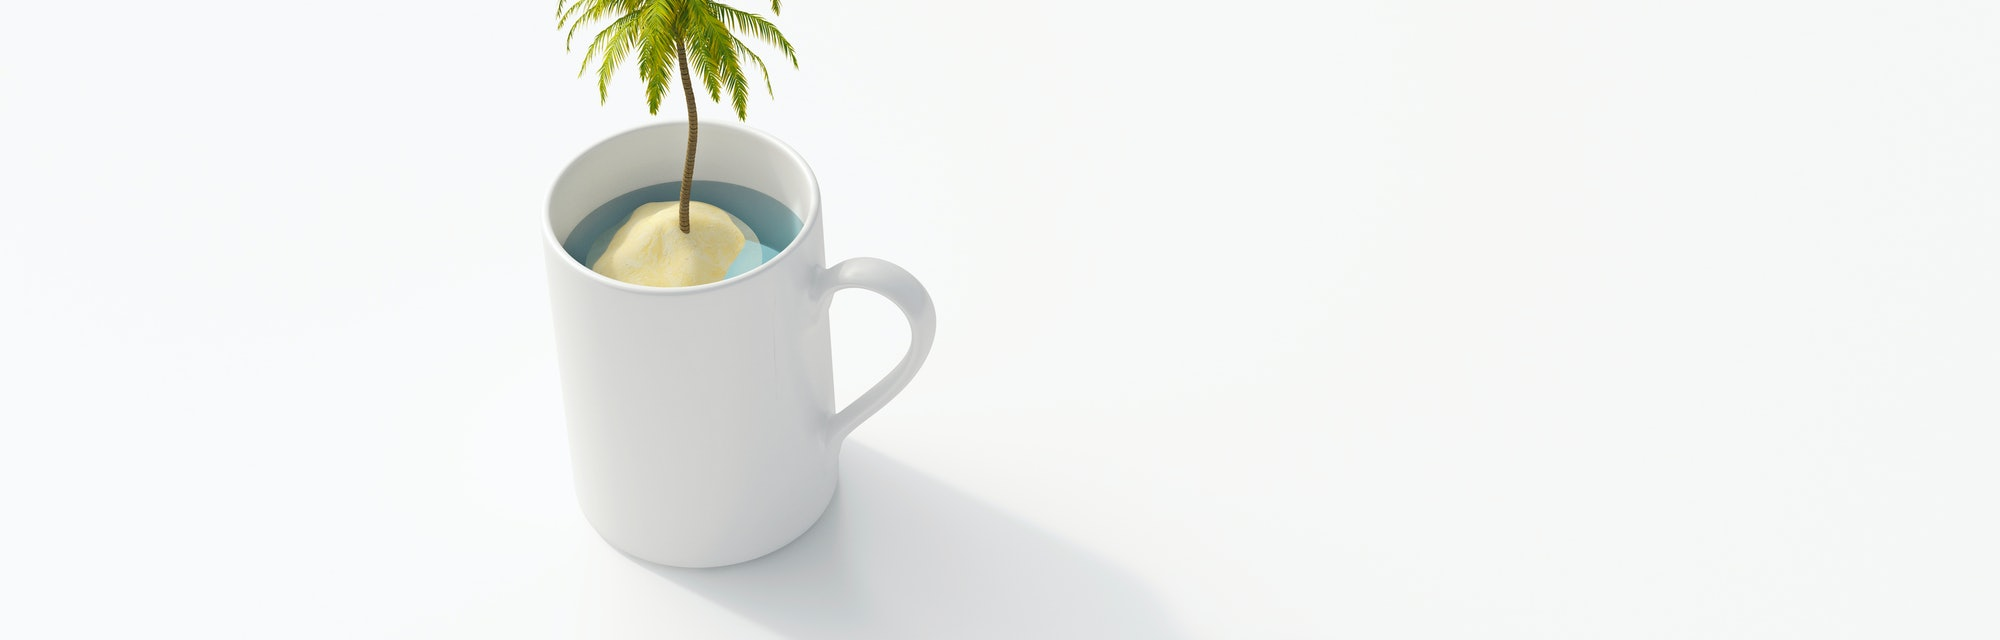 coffee, climate crisis